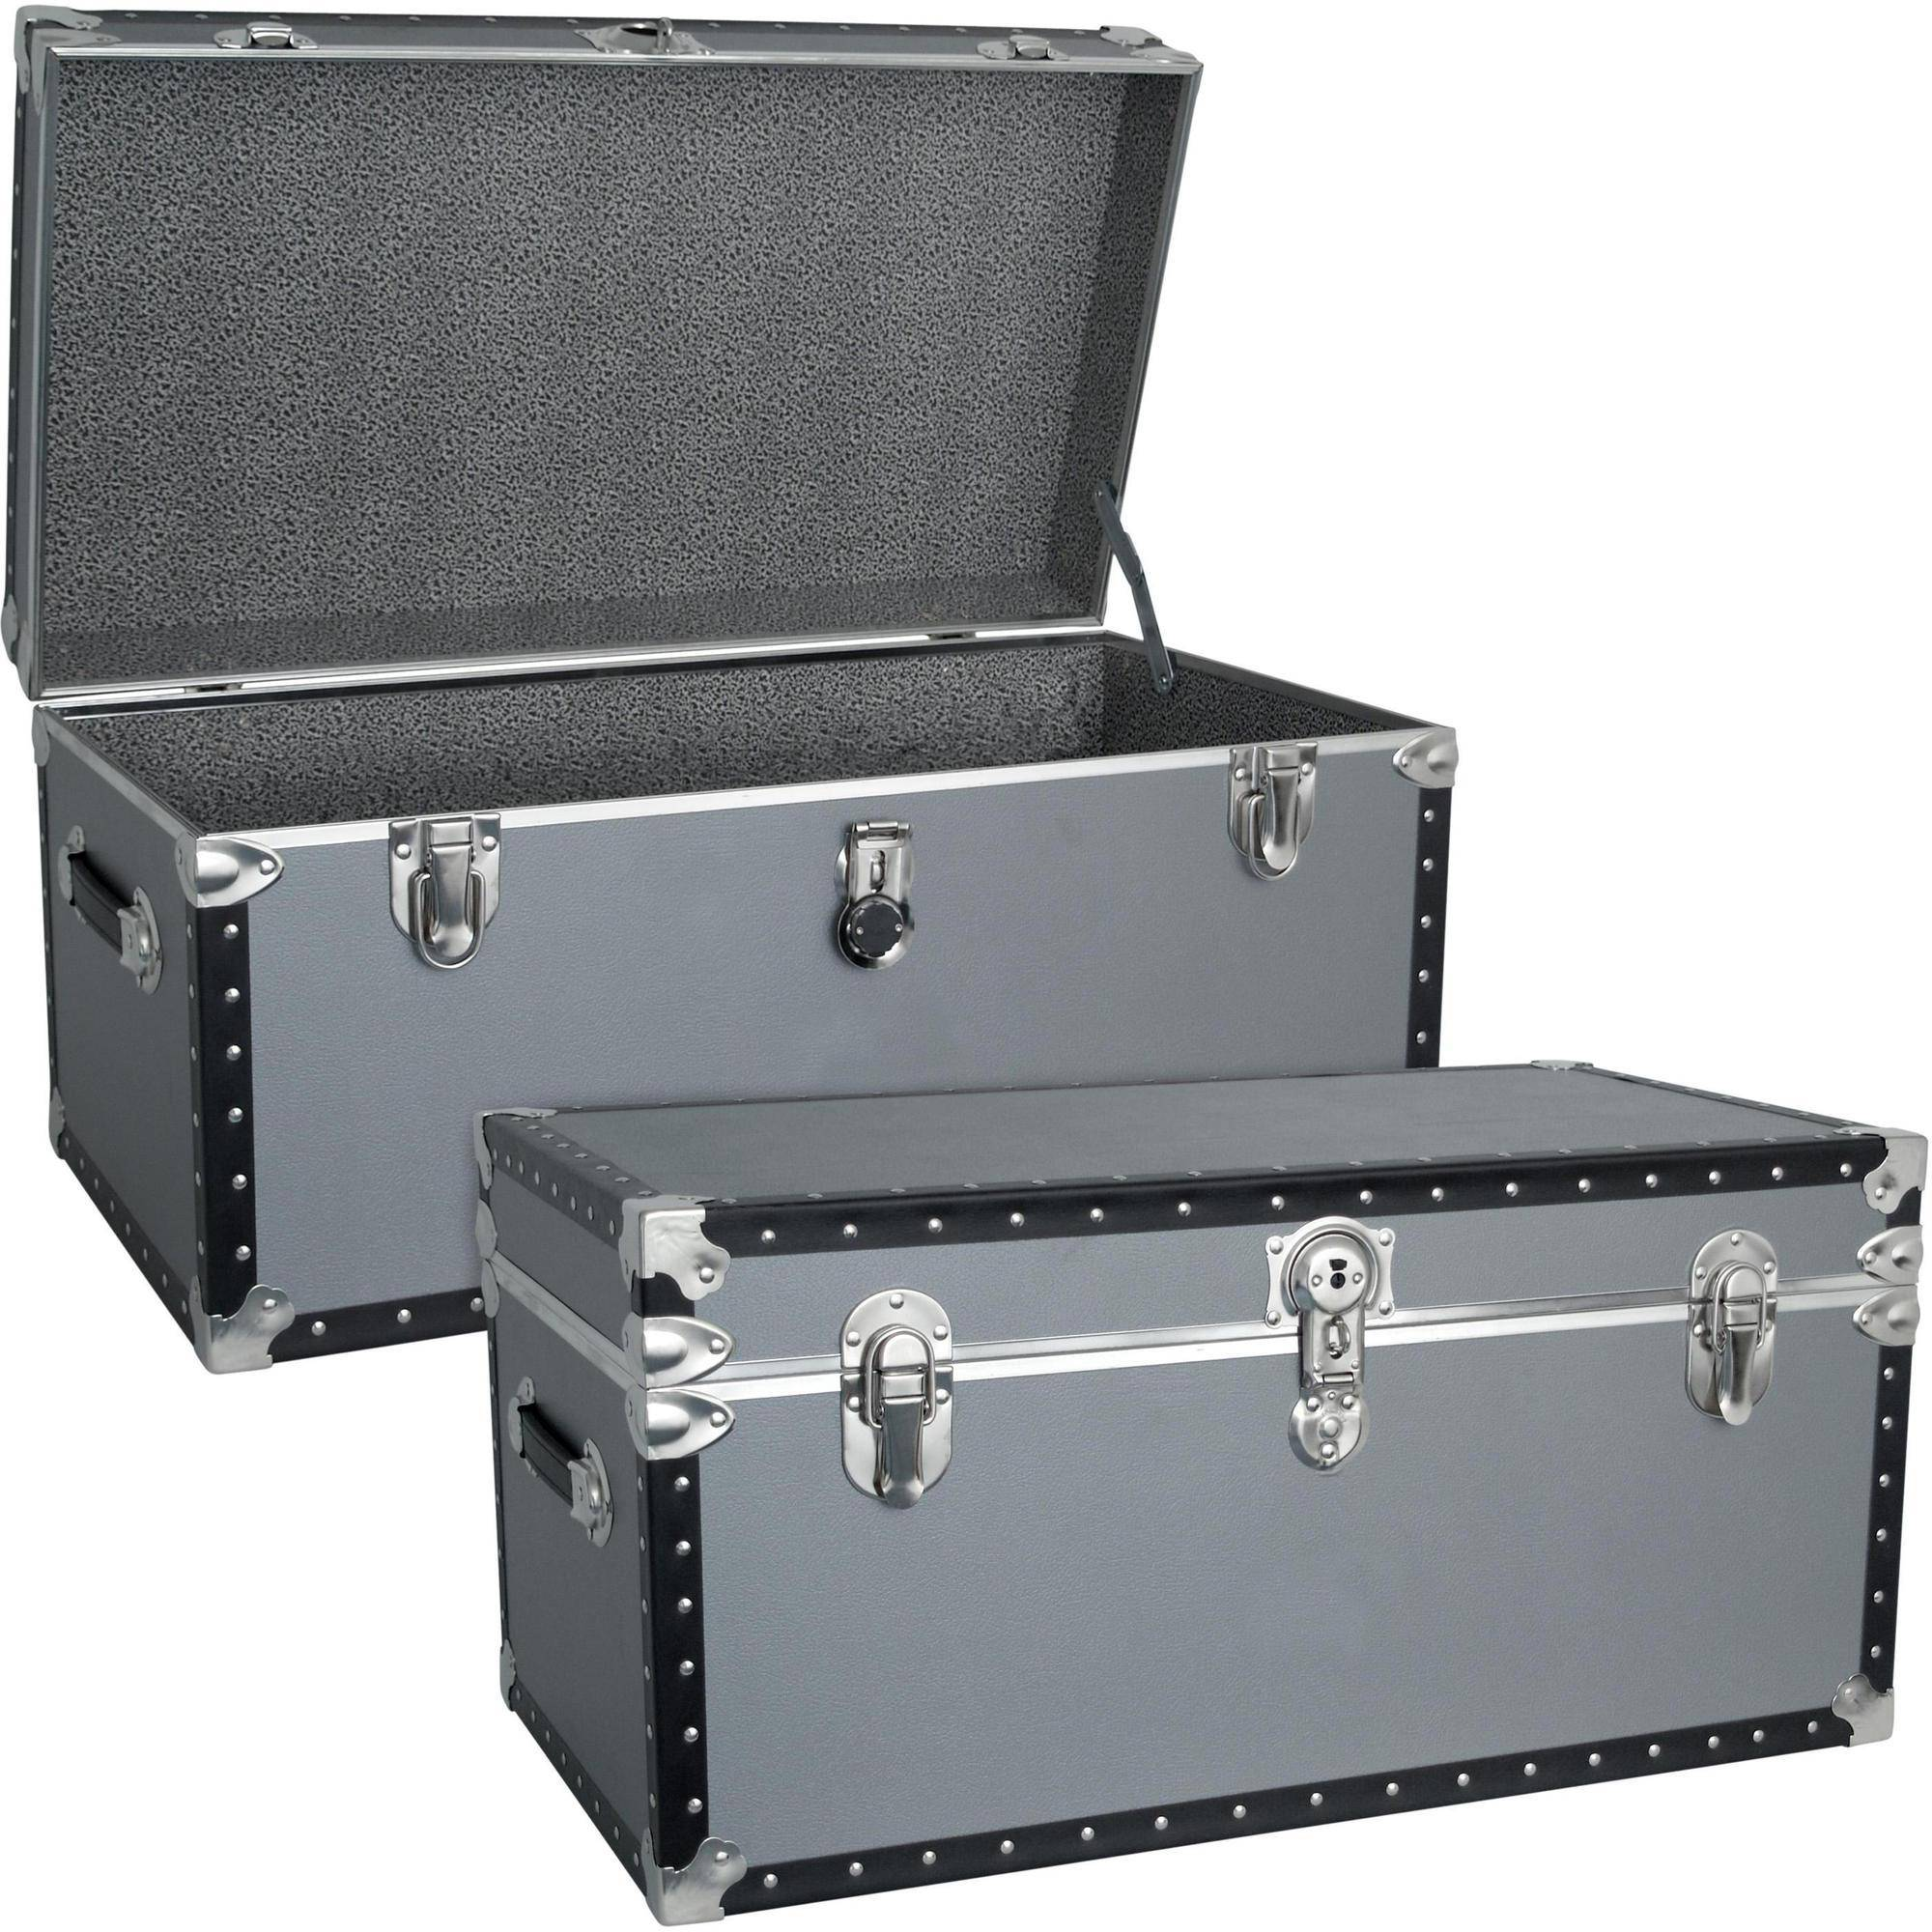 Mercury Luggage Seward Trunk 31 Inch Stackable Footlocker Trunk, Silver    Walmart.com